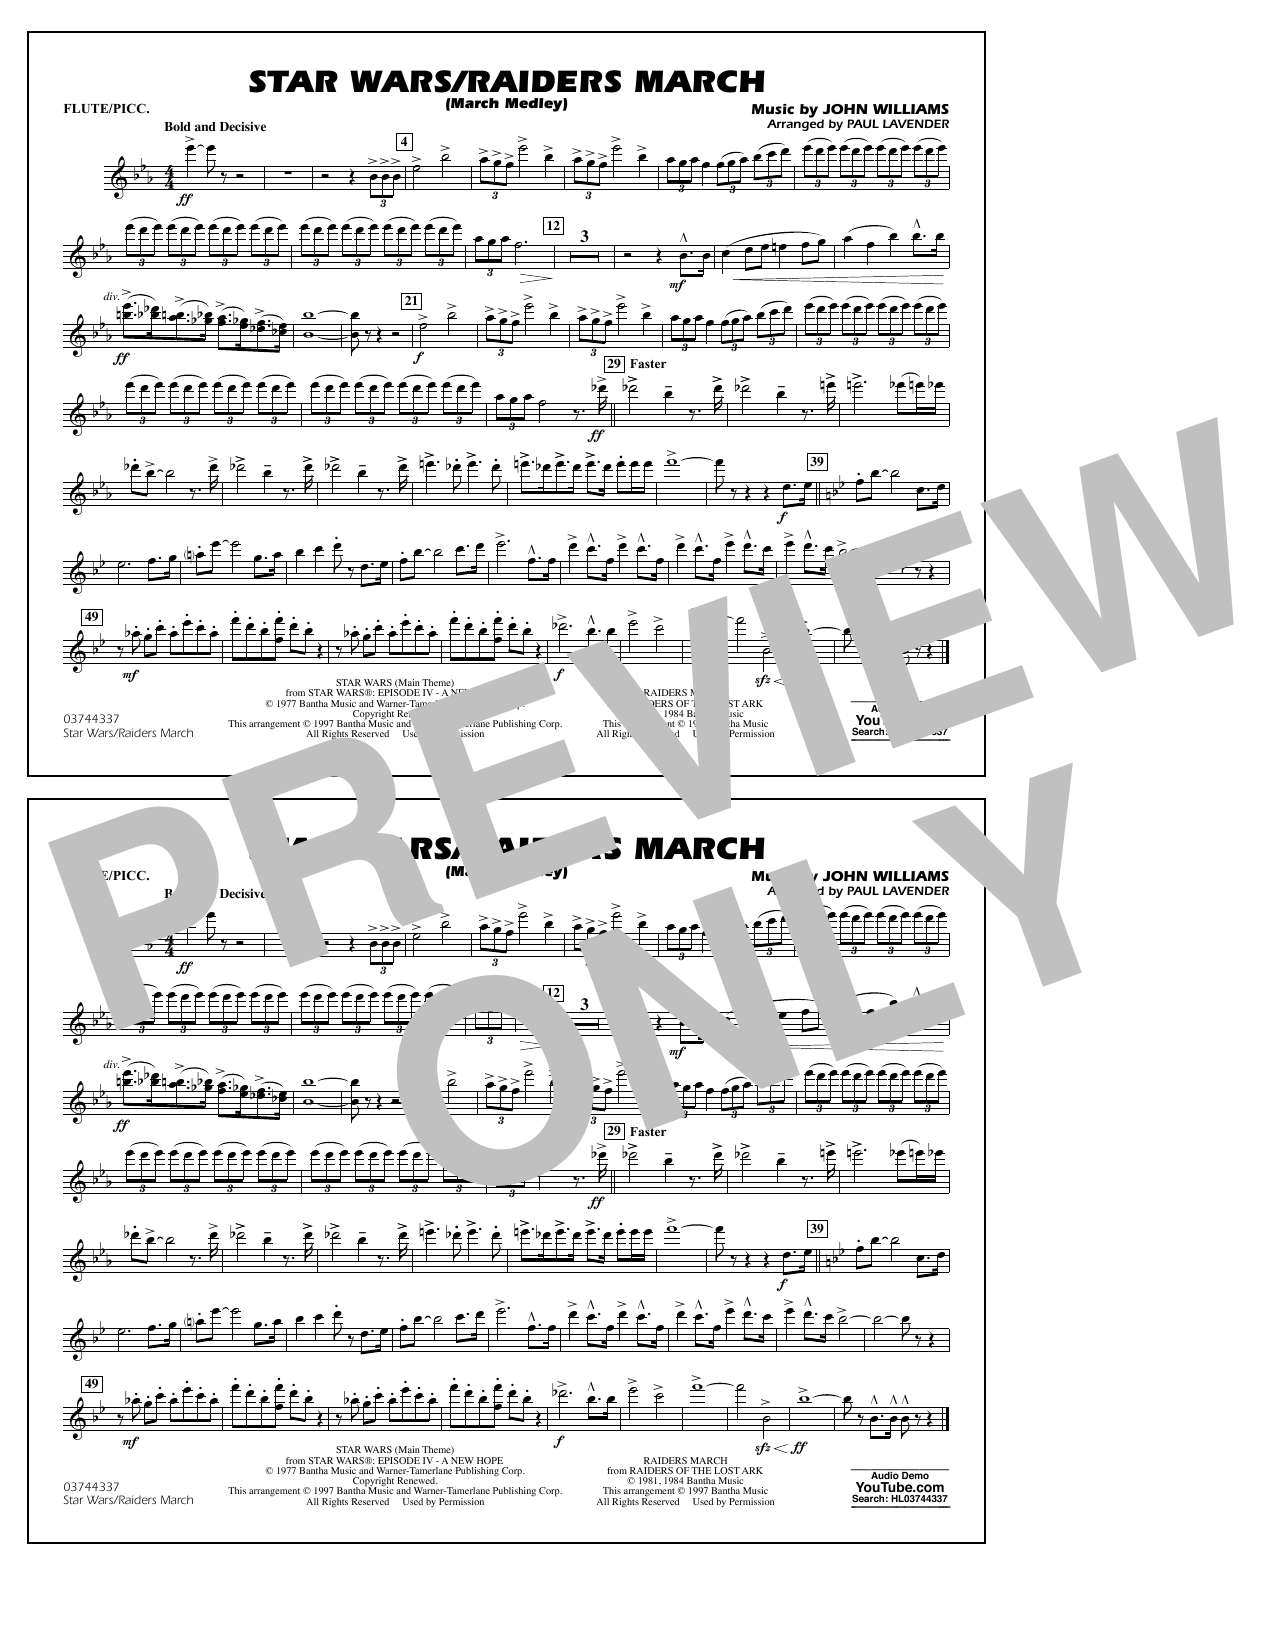 Star Wars/Raiders March - Flute/Piccolo Sheet Music